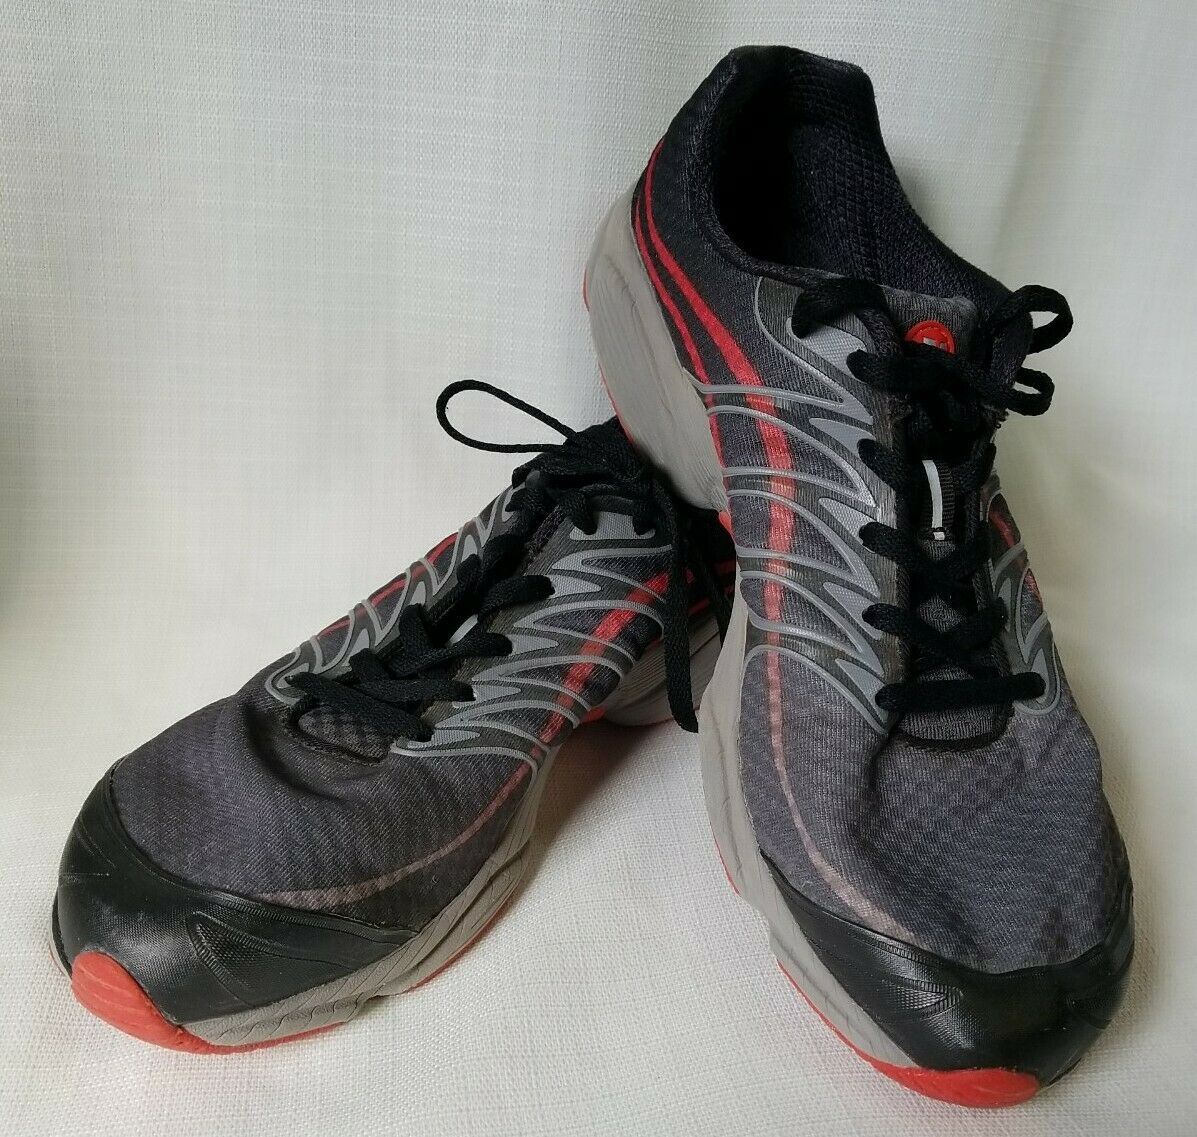 Merrell J01679 Castle Rock Red and Gray Lace Up Trail Running Shoes Mens 10.5